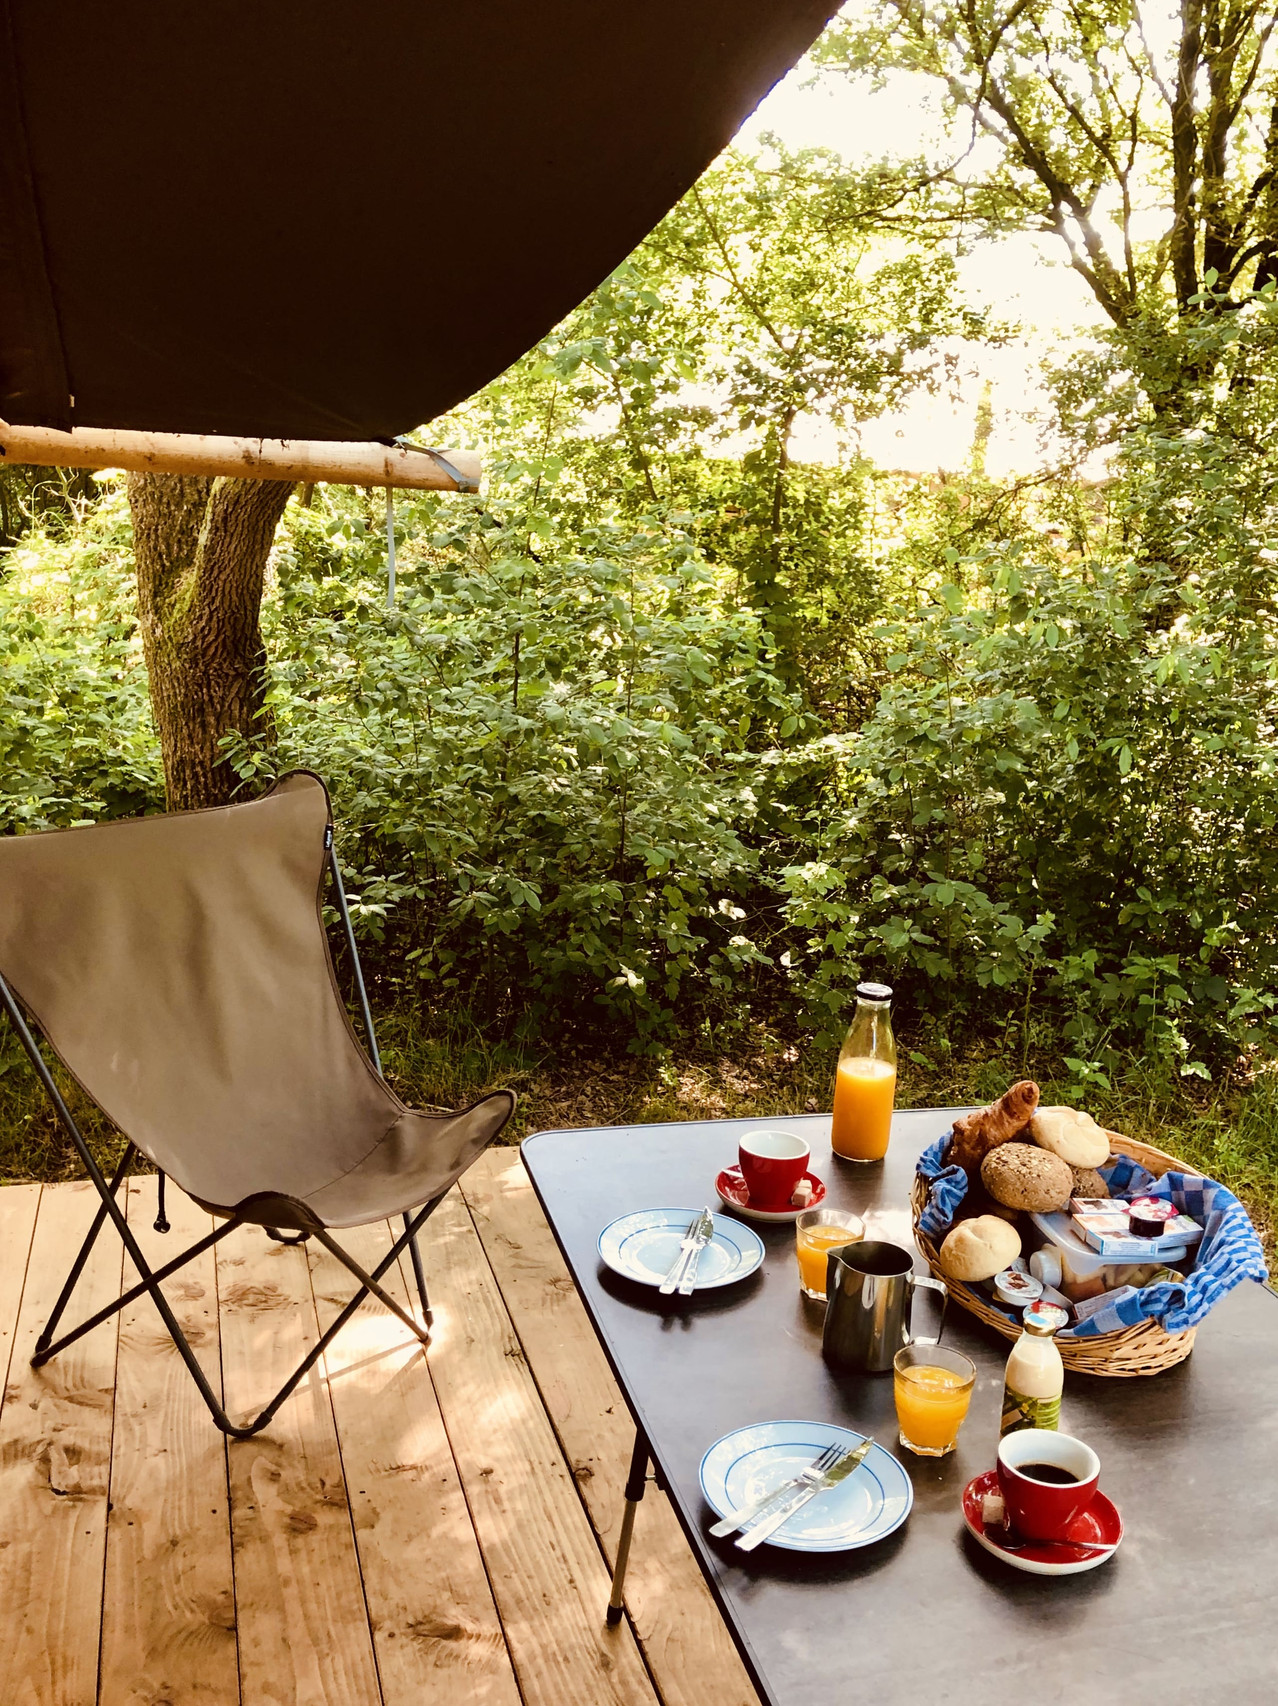 Huttopia Camping de Roos Trappeur breakfast - the Netherlands